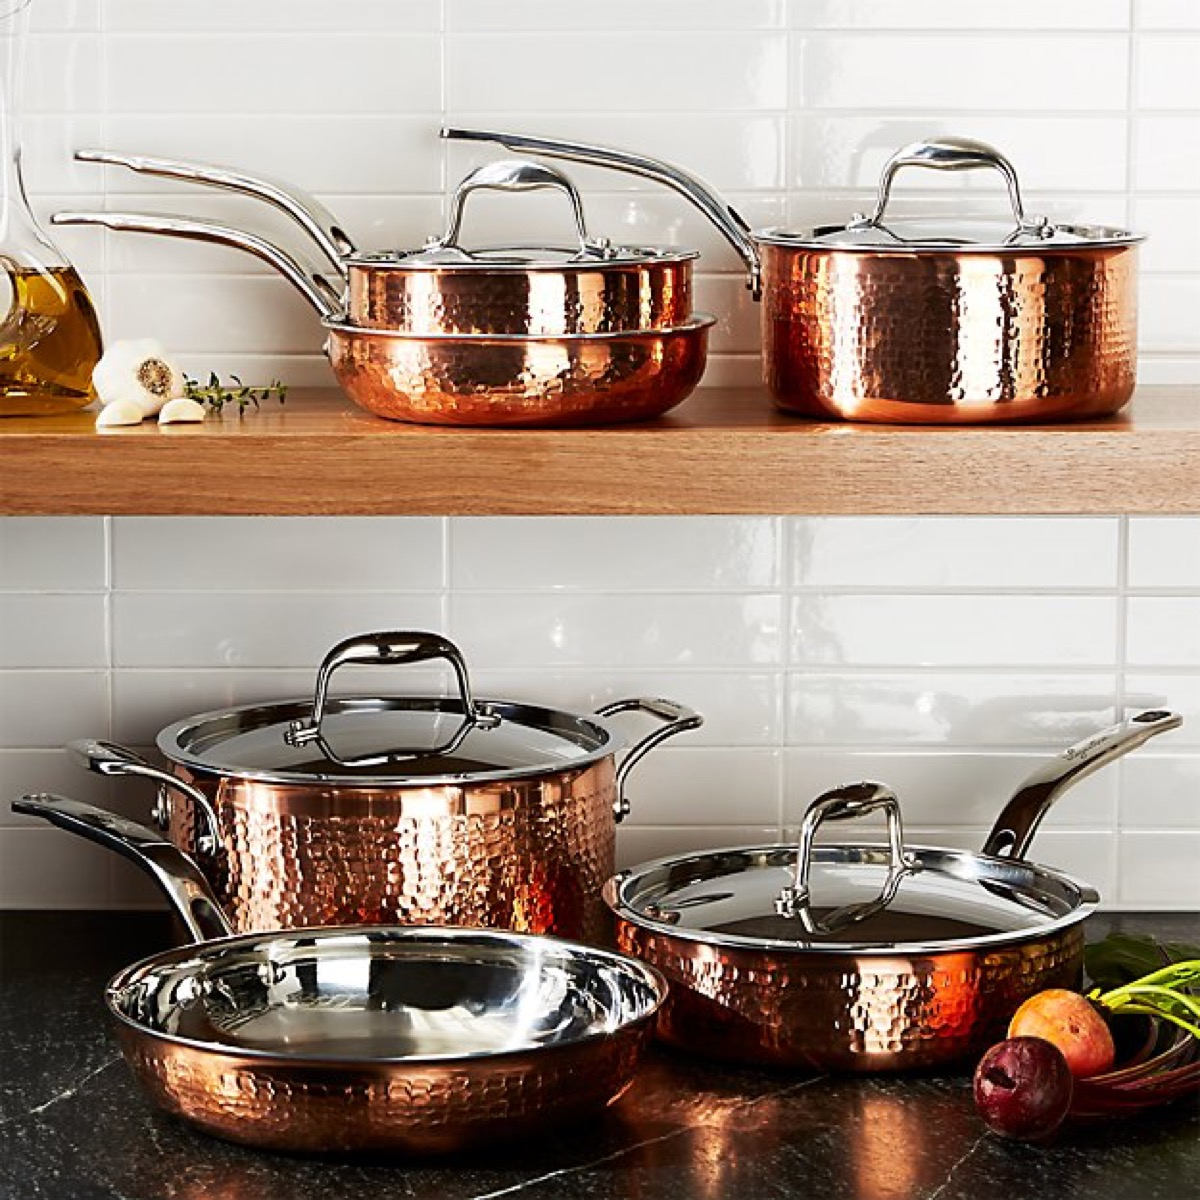 Copper cookware in a kitchen